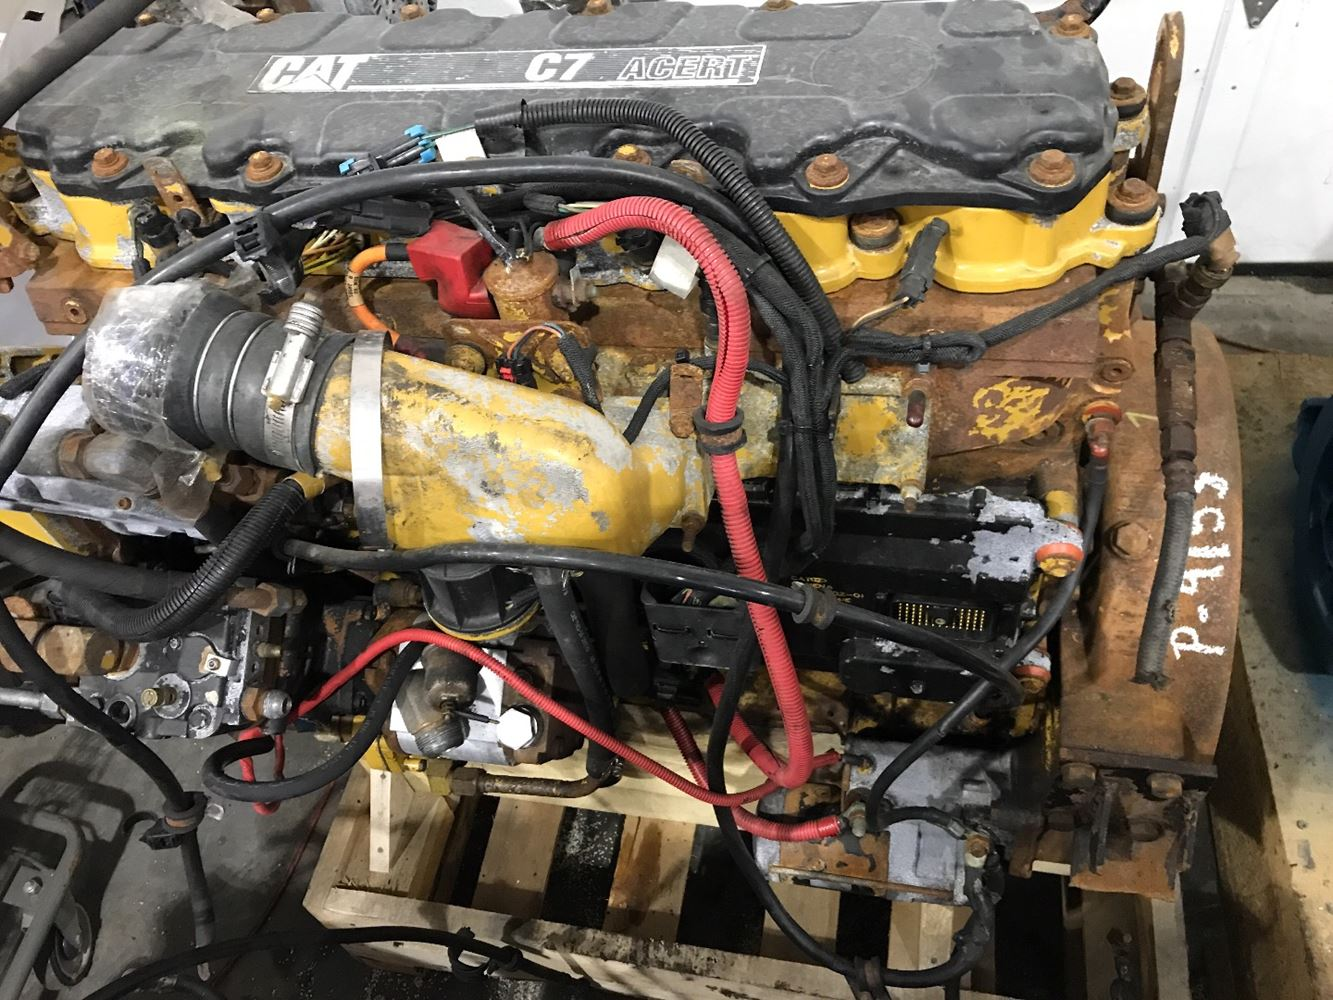 CATERPILLAR C7 ENGINE ASSEMBLY TRUCK PARTS #679939